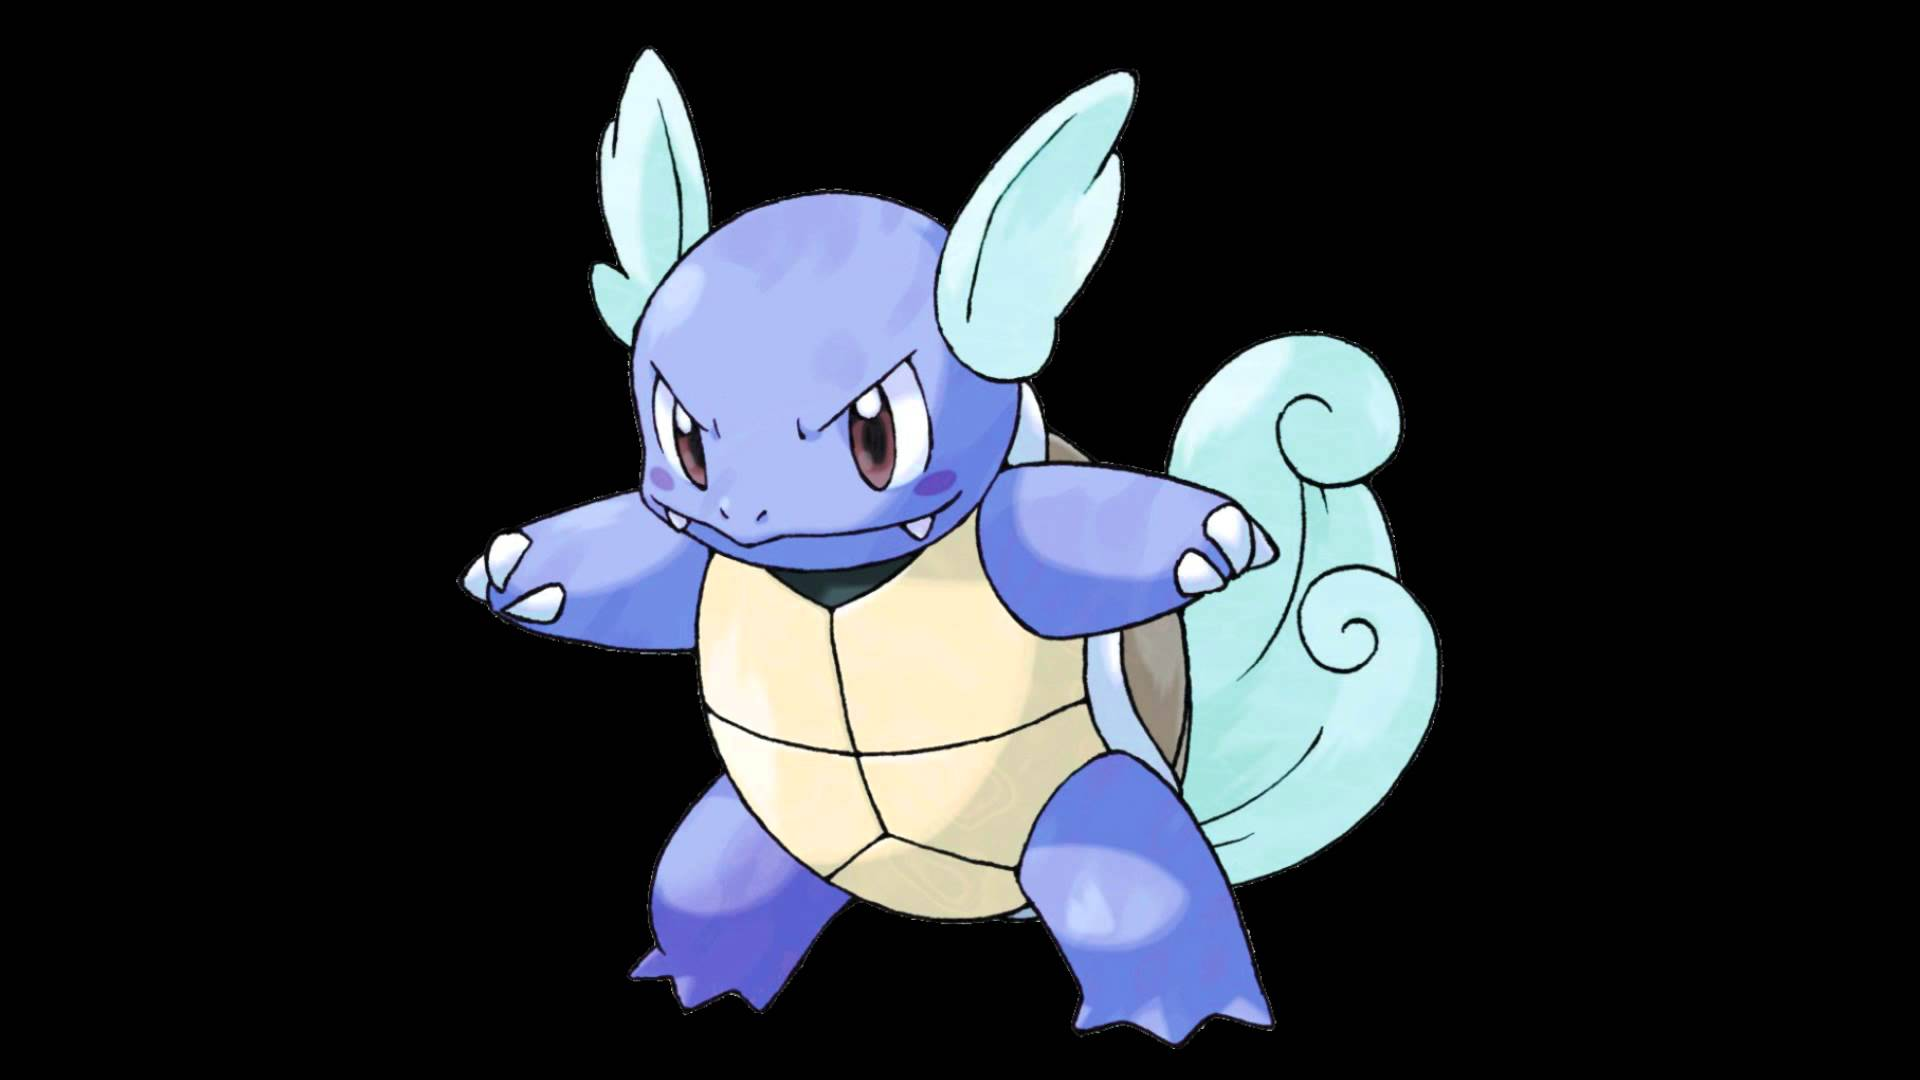 008 Wartortle cry - YouTube